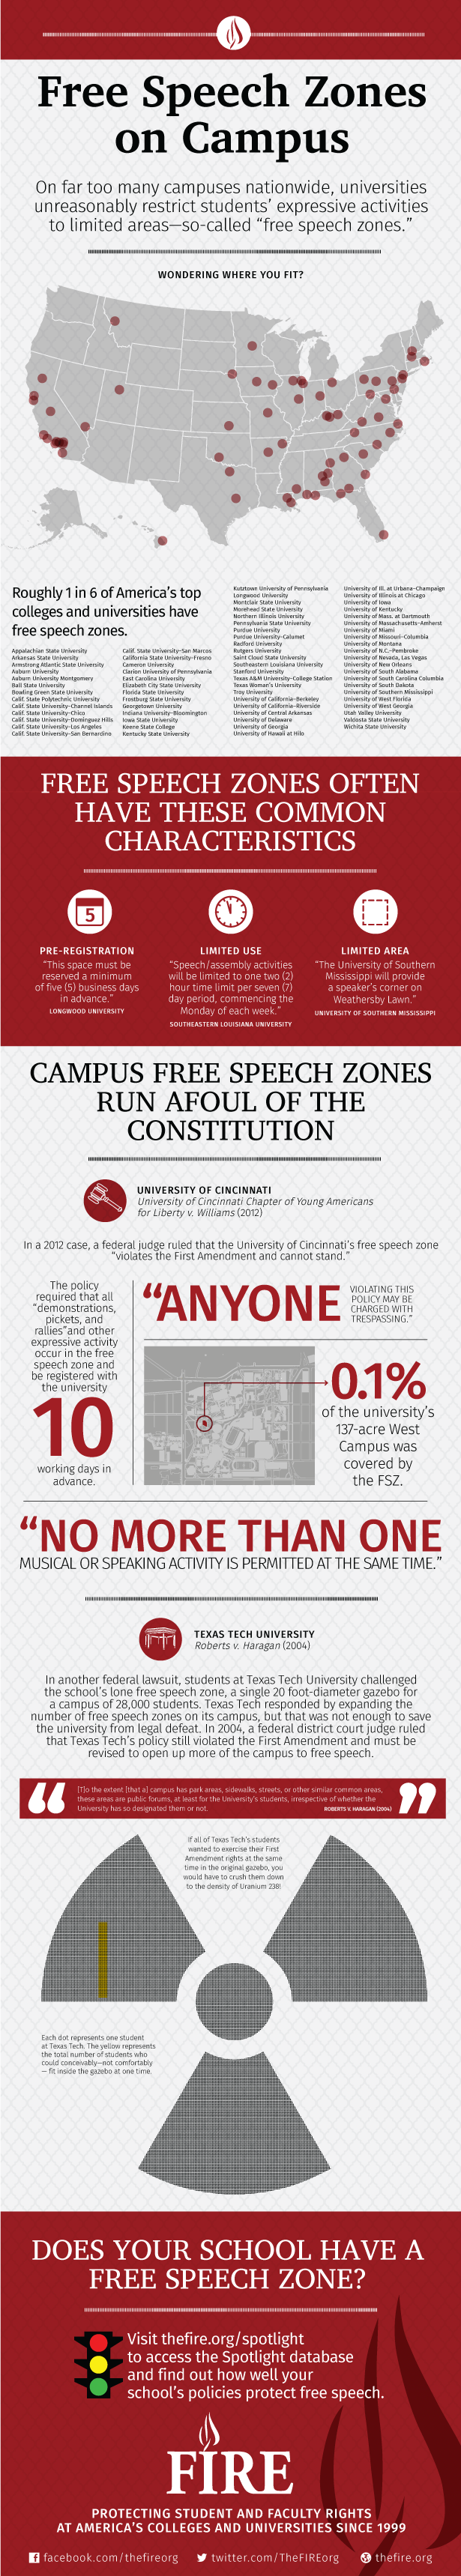 Free Speech Zones on College Campuses